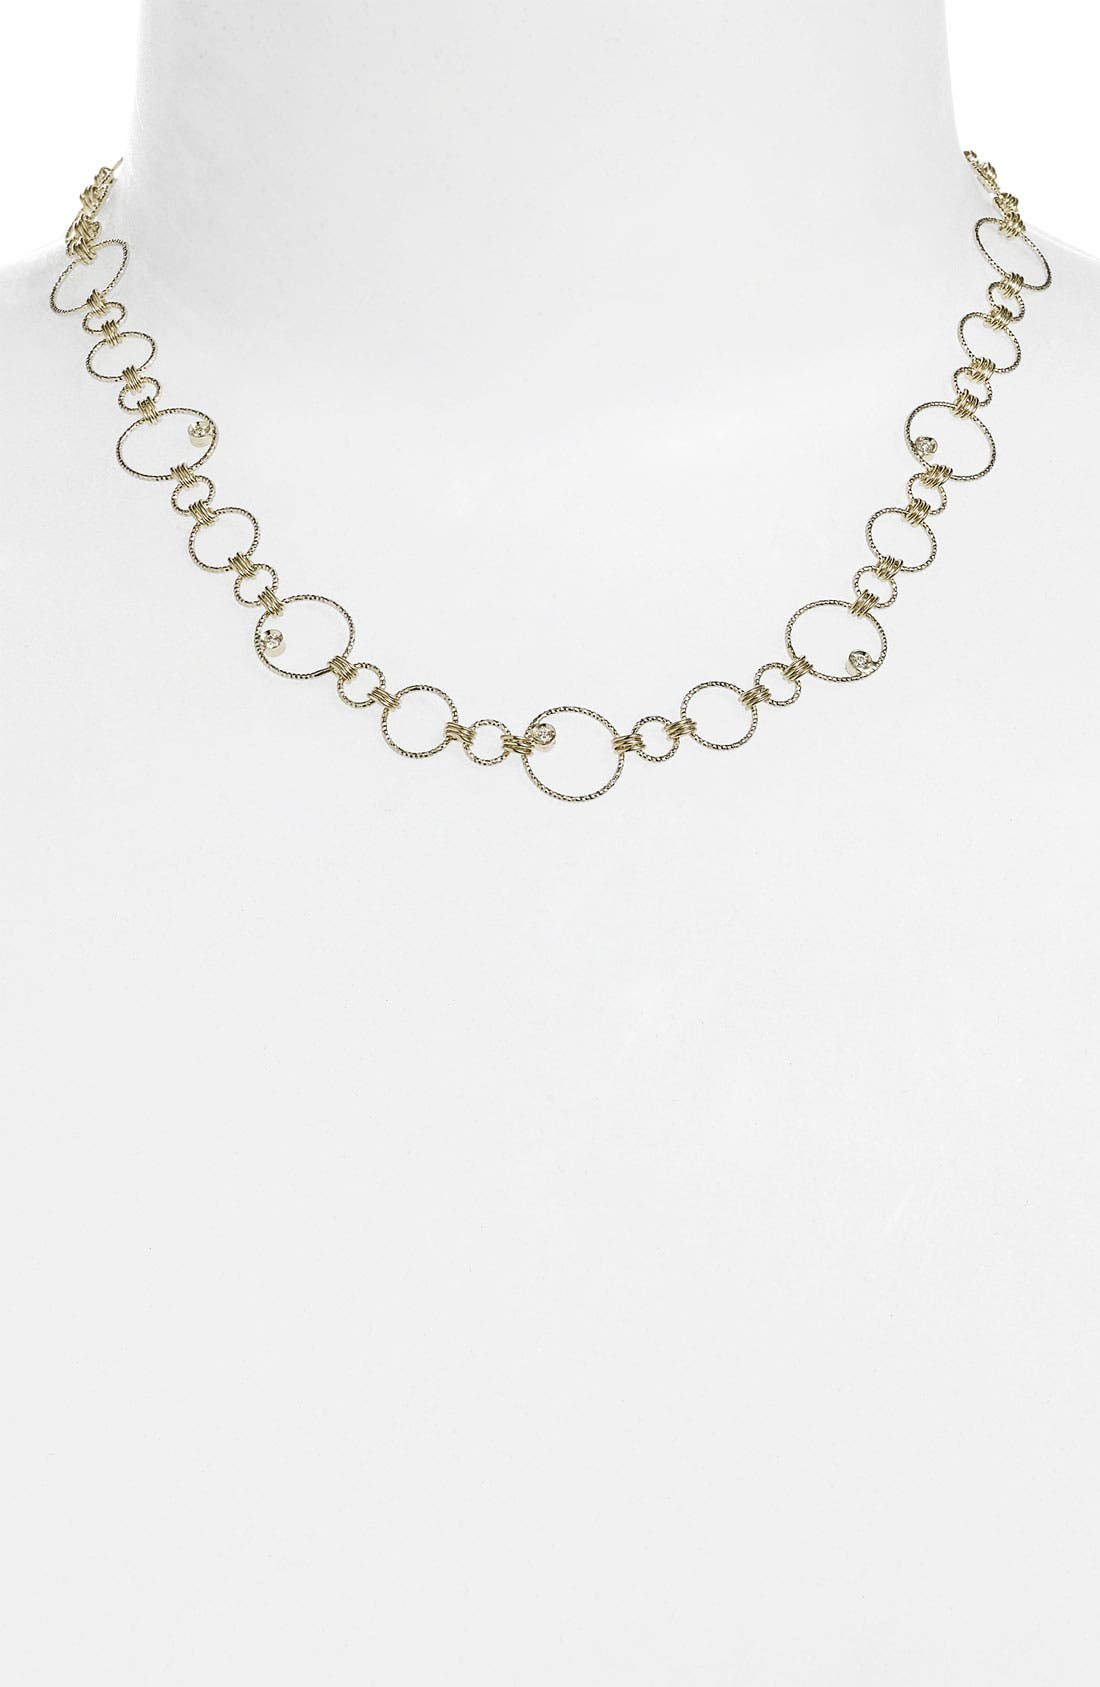 Alternate Image 1 Selected - Roberto Coin 'Moresque' Diamond Necklace